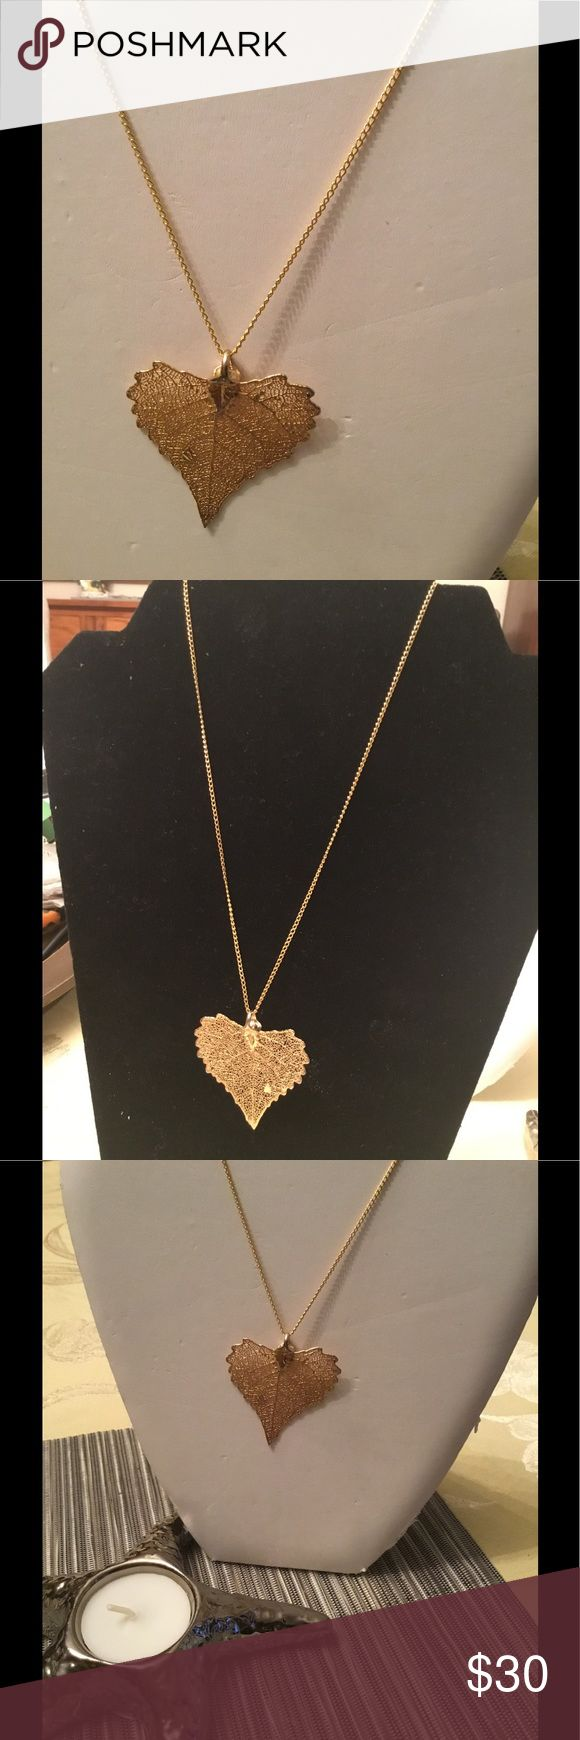 Real Maple Leaf Necklace Dipped in 18kt gold! Unique One of A Kind 18kt Maple Leaf that is a real Leaf! It comes with a gold plated chain but. Happy to offer a Gold Filled one for an additional $9.00 . Made with Love, light and positive energy. I also can add a charm. Pacific Rim Collection Jewelry Necklaces